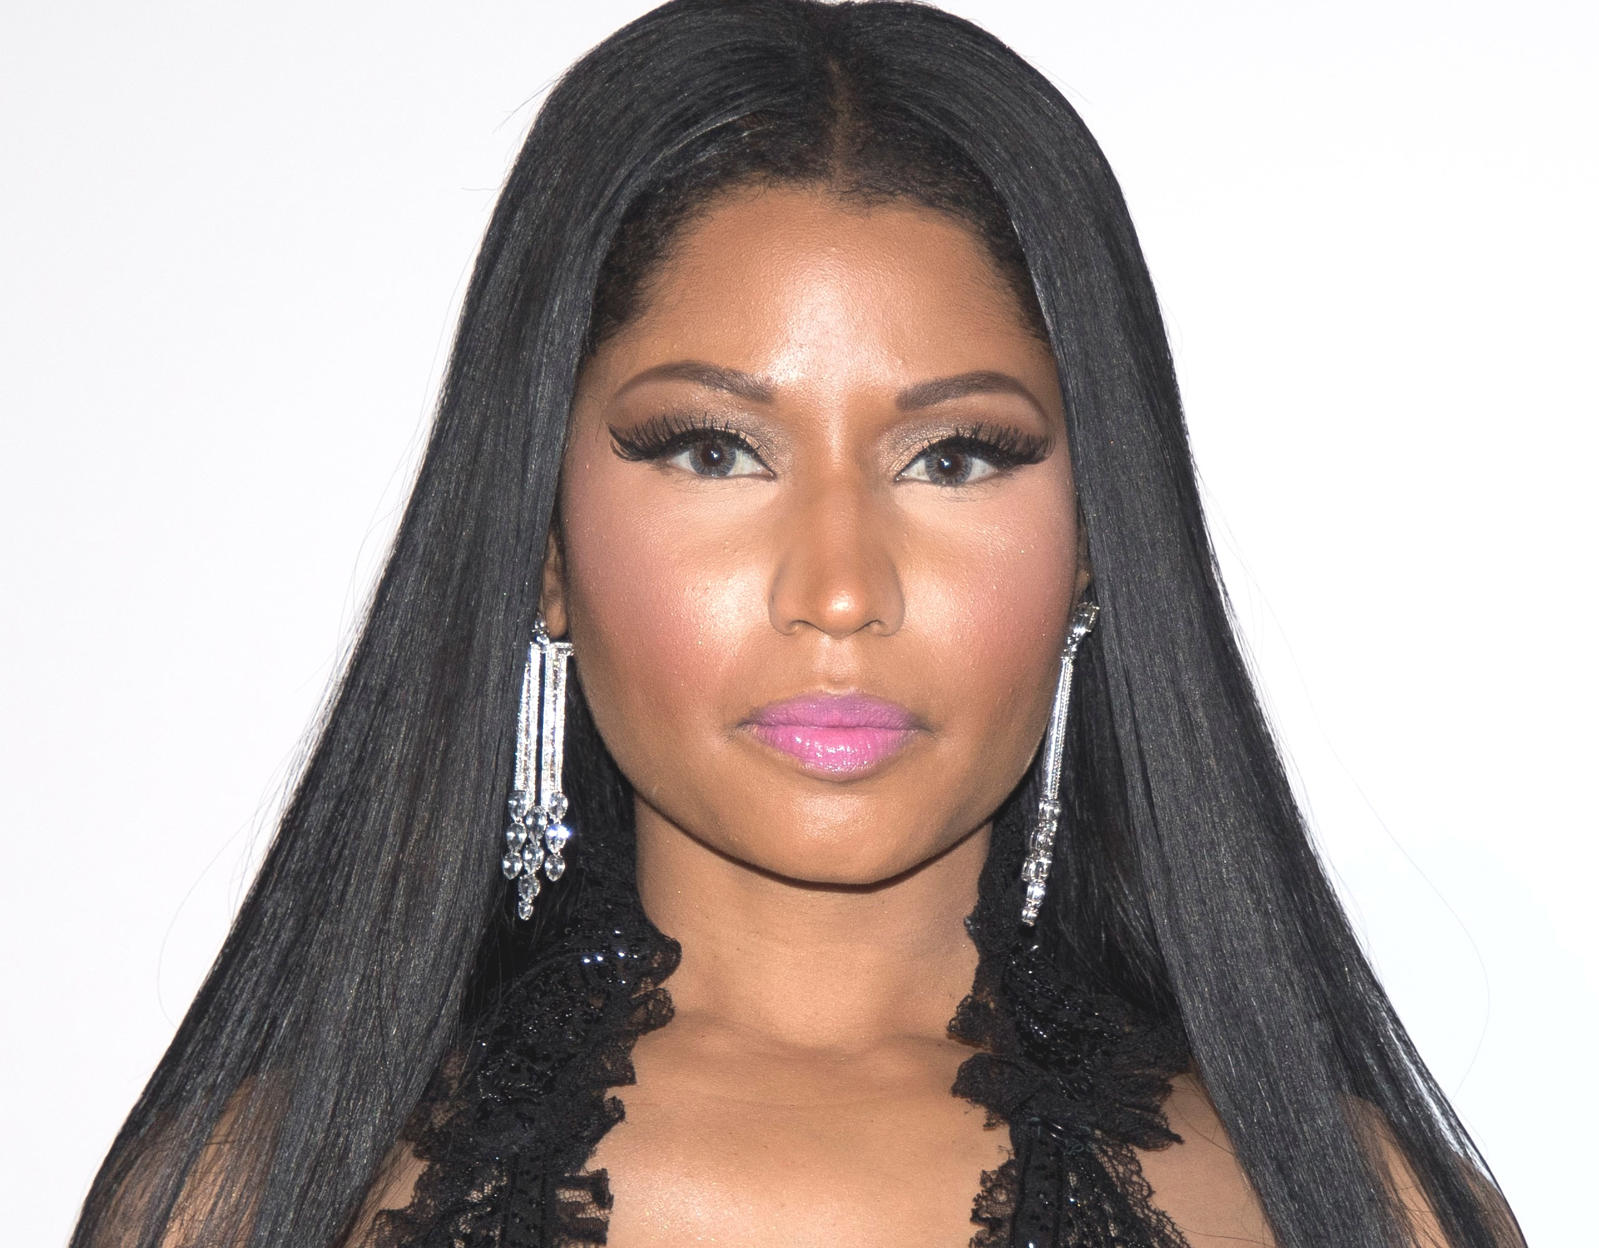 Nicki Minaj was allegedly attacked by fellow rapper Cardi B during a New York Fashion Week party last month.